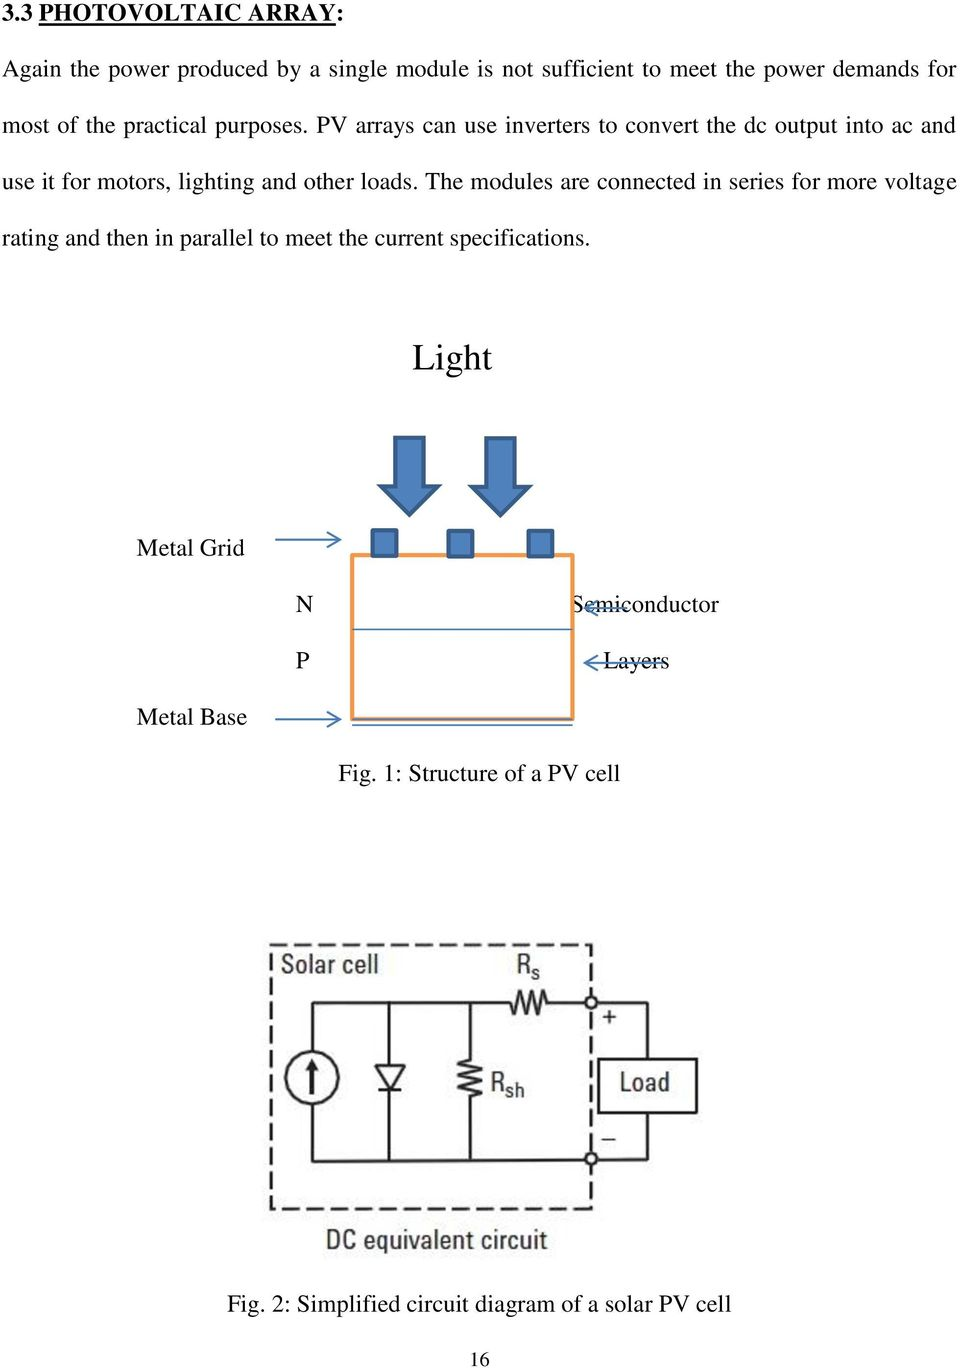 Matlab Based Modeling Of Photovoltaic Array Characteristics Pdf Solar Panel Optimizer Circuit Electronic Projects Diagram A Pv Cell 16 The Modules Are Connected In Series For More Voltage Rating And Then Parallel To Meet